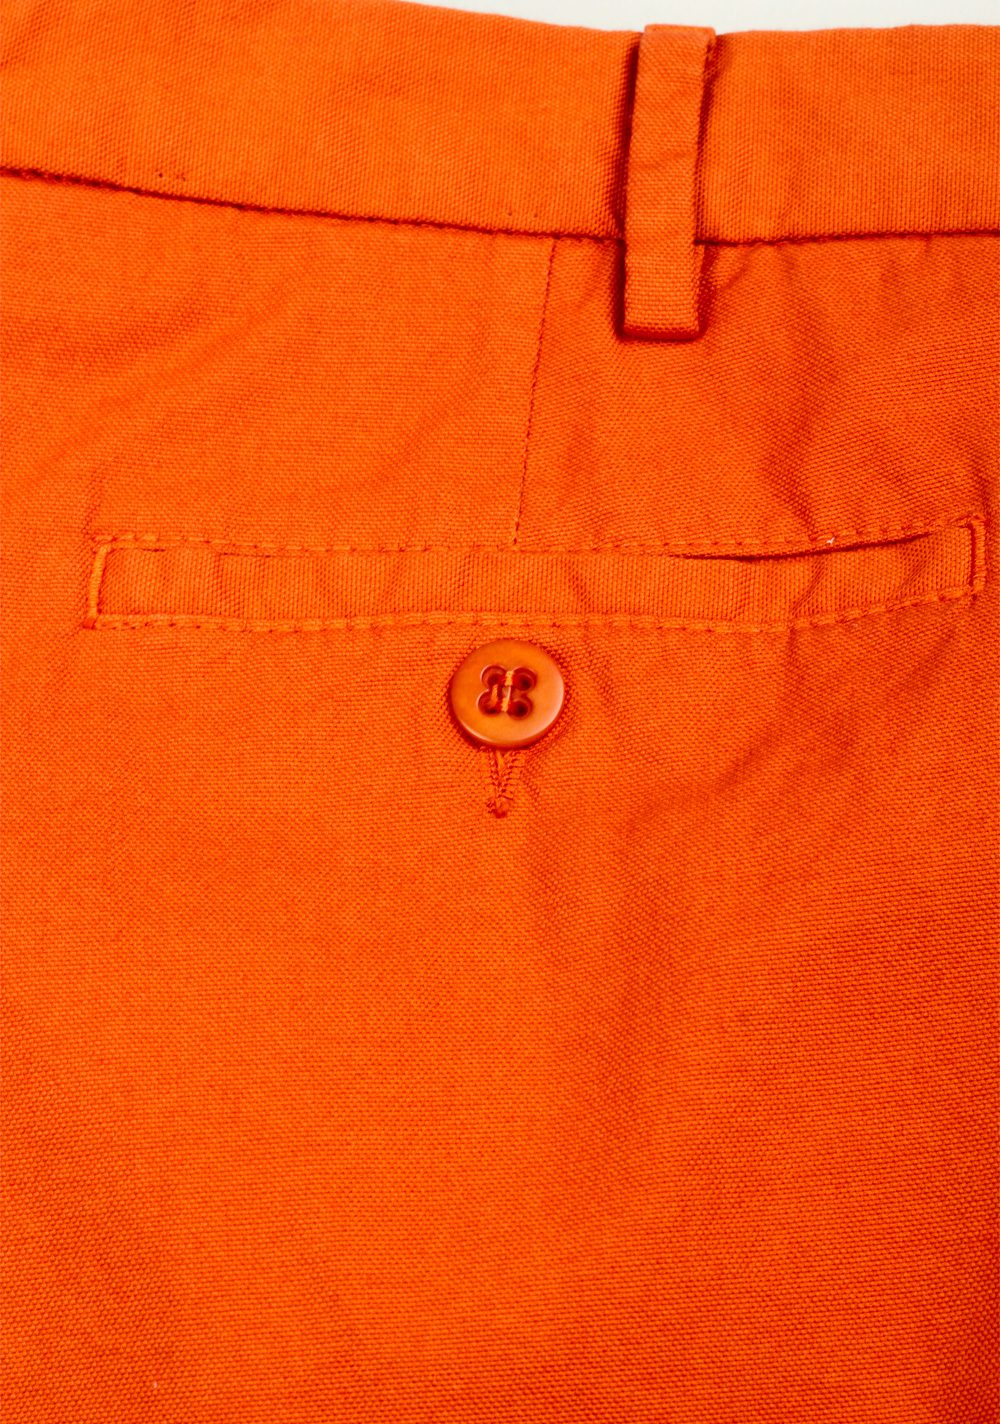 Caruso Orange Trousers Size 54 / 38 U.S. | Costume Limité